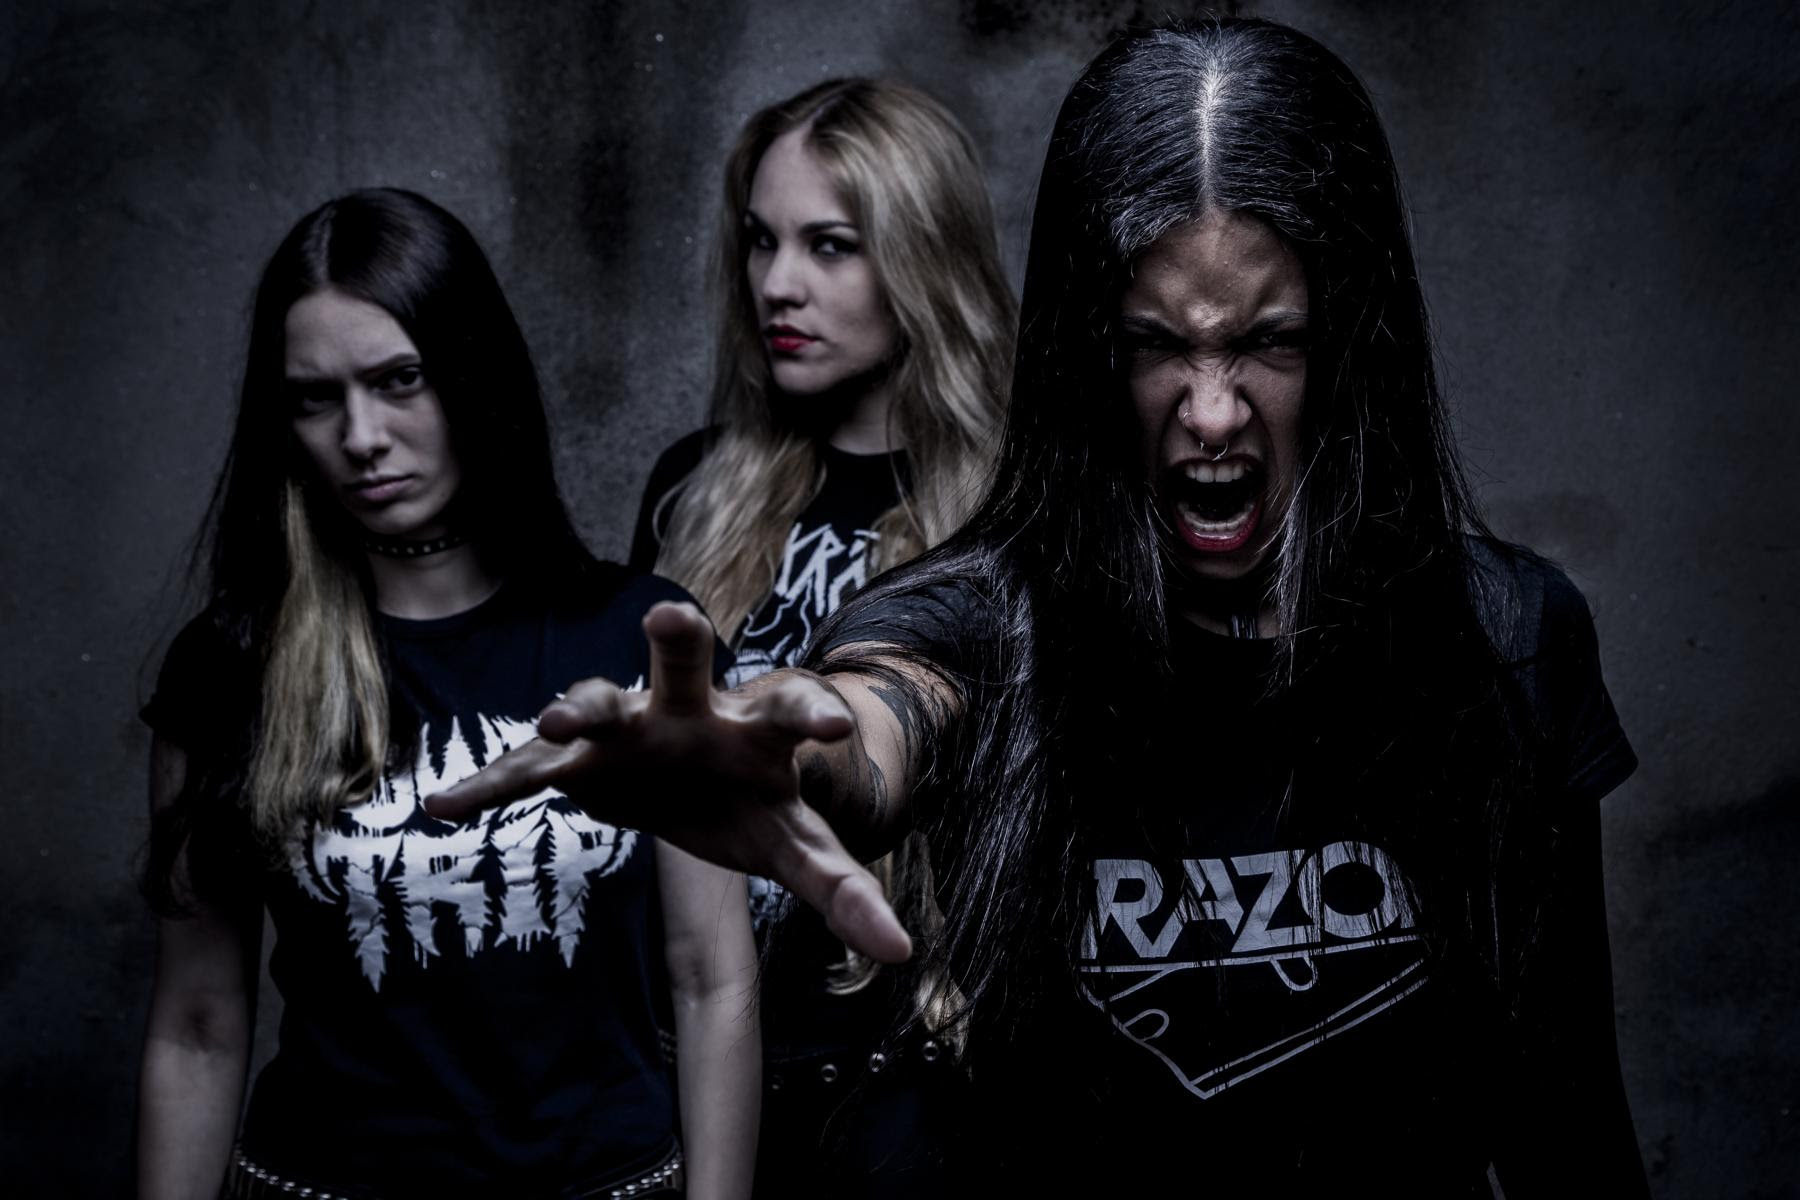 """On June 1st NERVOSA will deliver their blistering slab of metal on Napalm Records. Get ready for the   """"Downfall of Mankind""""  .  This Brazilian all-female thrash commando unit is synonymous with raw aggression and untamed power. They deliver a massive punch to the face and a kick in the gut on their albums, and when they take to the stage they are a force to be reckoned with. For their third album   """"Downfall of Mankind""""  ,the trio joined forces with producer Martin Furia who has worked with artists including the likes of Destruction, Flotsam & Jetsam and Evil Invaders.  Fernanda Lira comments on the new album:  """"We're really happy about this new album. It's a way more mature and aggressive record and we can definitely say it's our favorite so far!""""   NERVOSA are currently on the road with Venom Inc. and Suffocation throughout Europe. A complete list of dates can be found below.  The full track listing of   """"Downfall of Mankind""""  reads as follows: 1. Intro 2. Horrordome 3. Never Forget, Never Repeat 4. Enslave 5. Bleeding 6. ... And Justice for Whom? 7. Vultures 8. Kill the Silence 9. No Mercy 10. Raise Your Fist! 11. Fear, Violence and Massacre 12. Conflict 13. Cultura do Estupro 14. Selfish Battle (Bonus Track)  It comes as no surprise genre legends such as João Gordo (Ratos de Porão), Rodrigo Oliveira (Korzus) and Michael Gilbert (Flotsam & Jetsam) were thrilled to be studio guests!"""